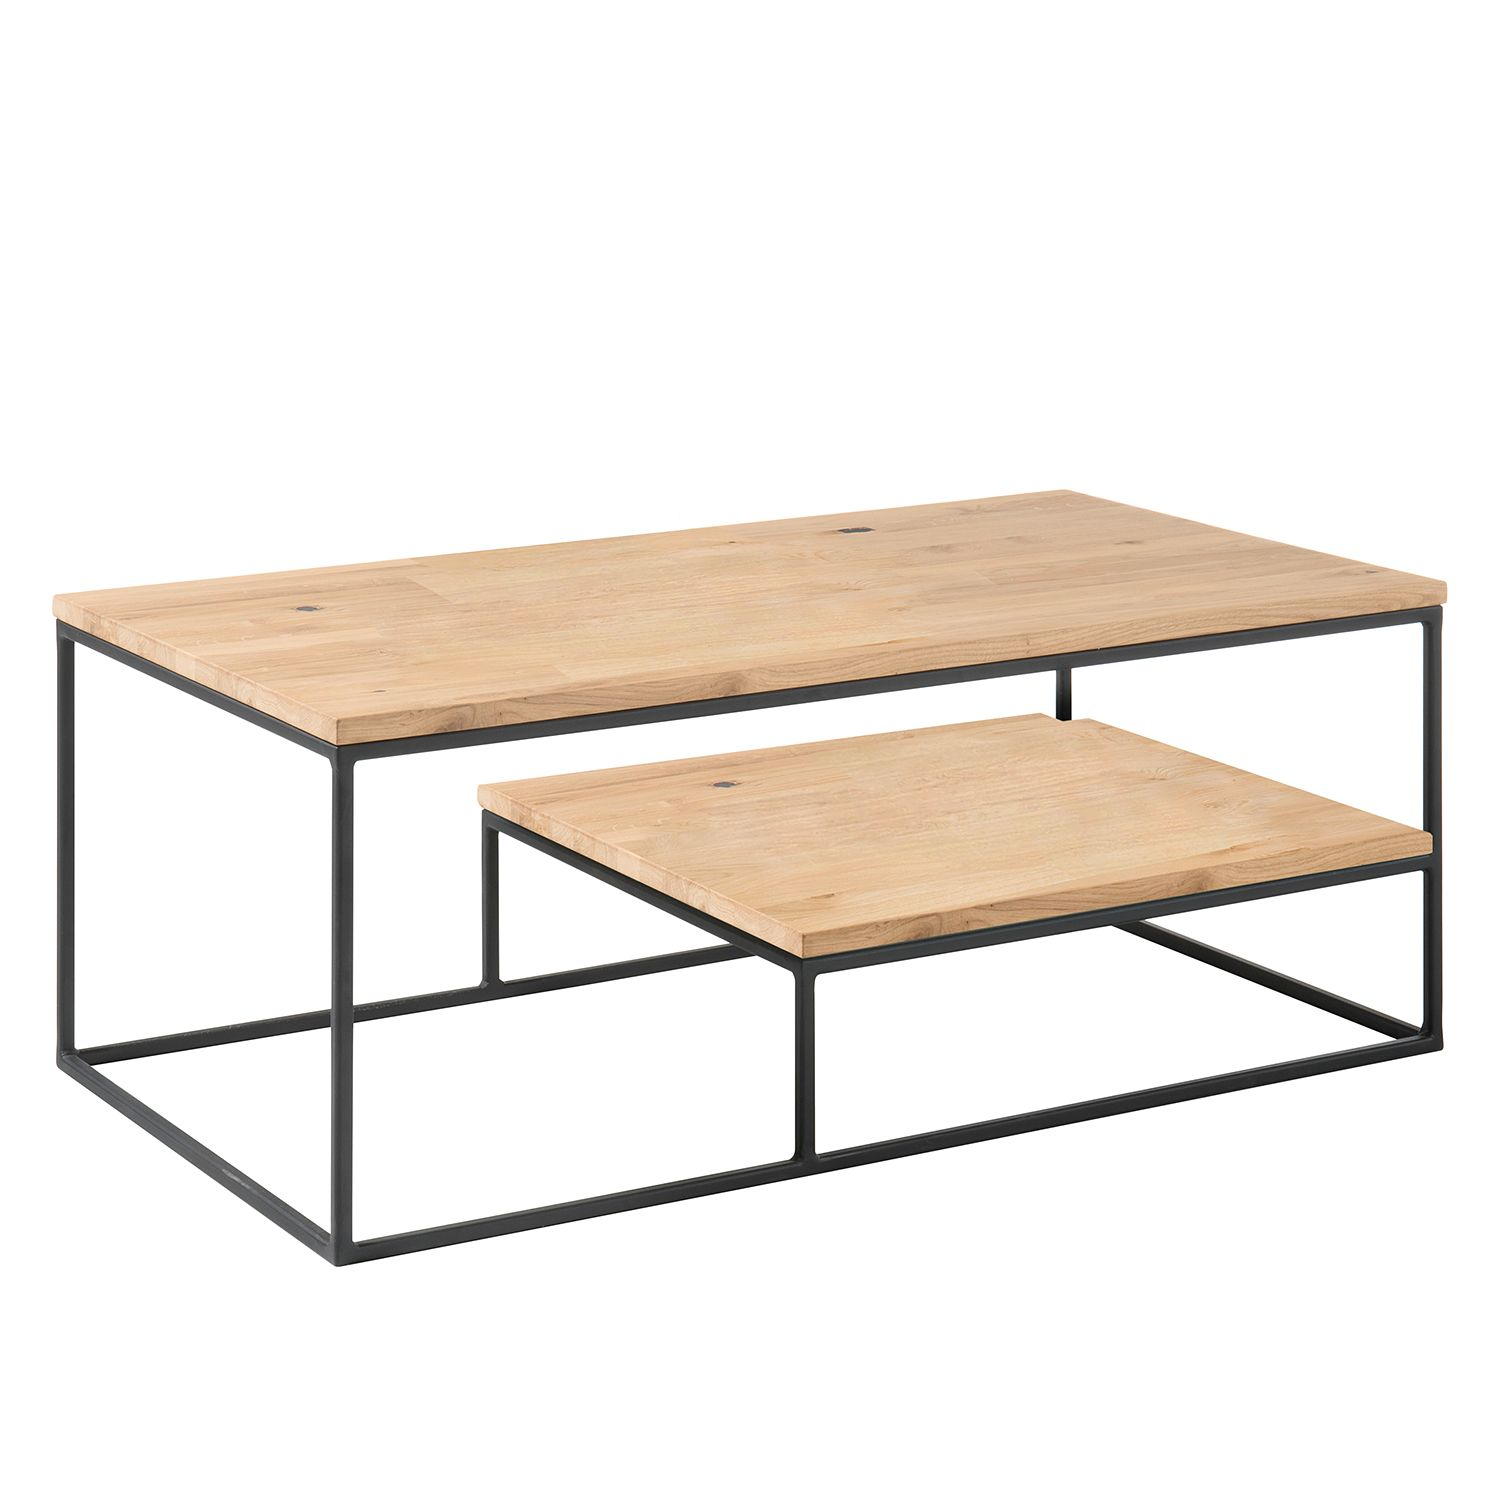 Table basse Karnin